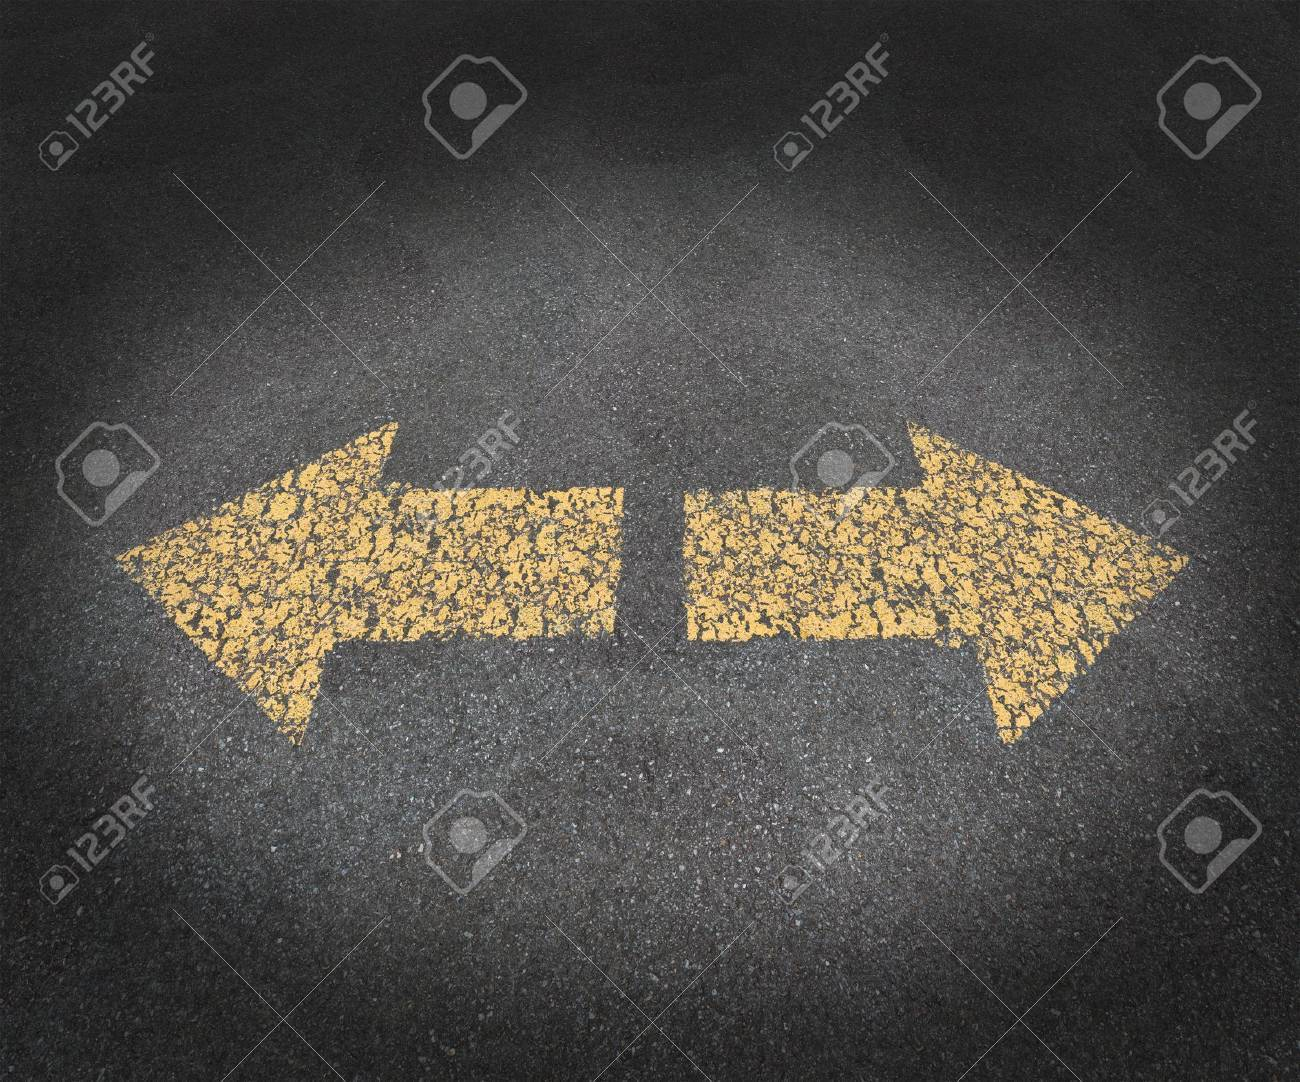 Strategy and decisions concept with a textured asphalt road and two old painted yellow arrows pointing in opposite directions as a business symbol of confusion and uncertainty in the future path ahead Stock Photo - 15206255